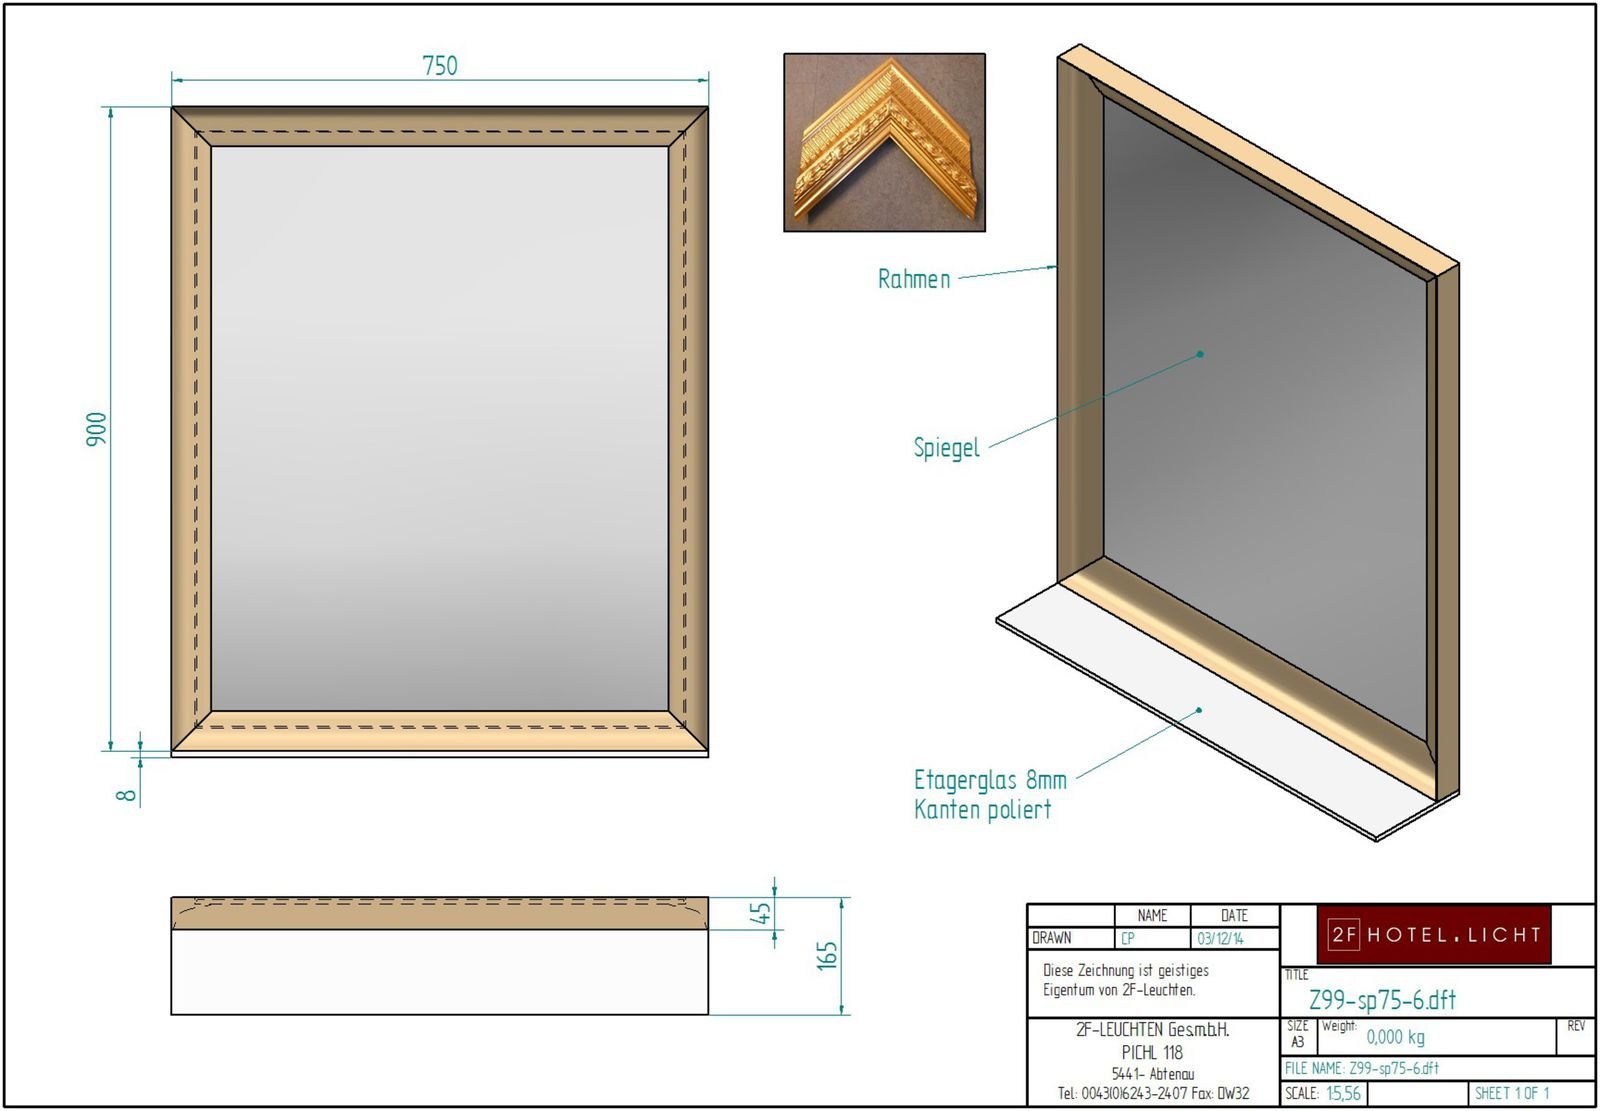 mirror, height=1100mm, wide=900mm, surface: wood in gold/silver antique, techn. details: E27, 40W